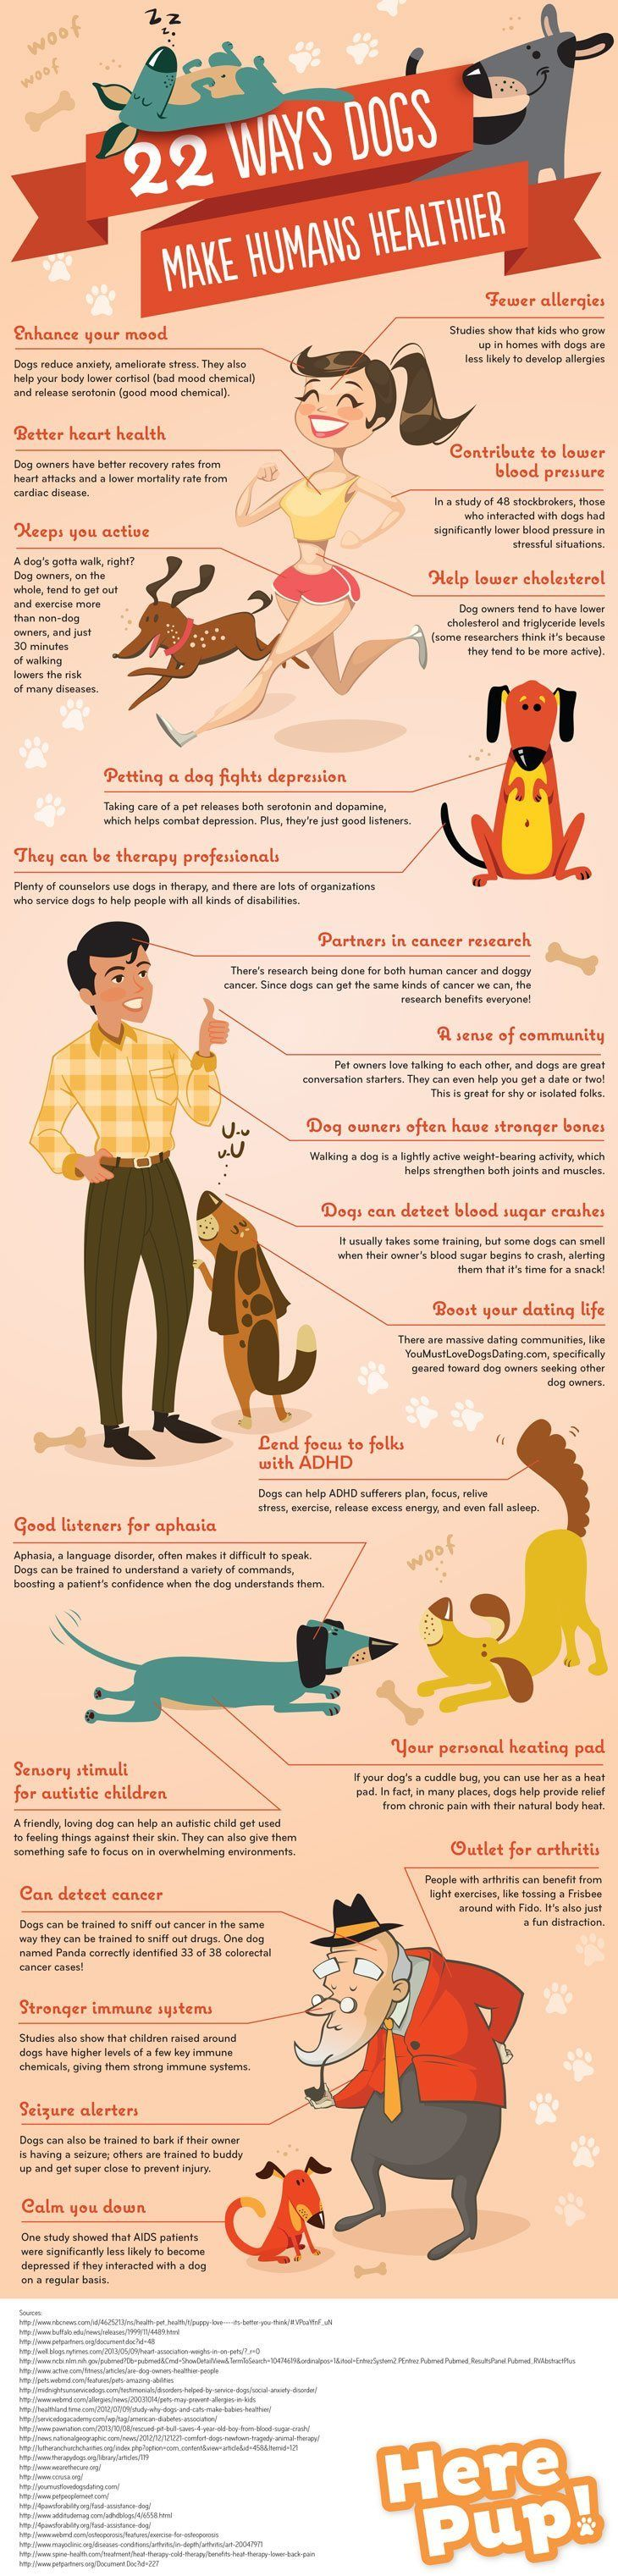 The Many Reasons Why Dogs May Make Us Healthier – Owning a dog or for that matter any pet may help us be happier and healthy individuals.